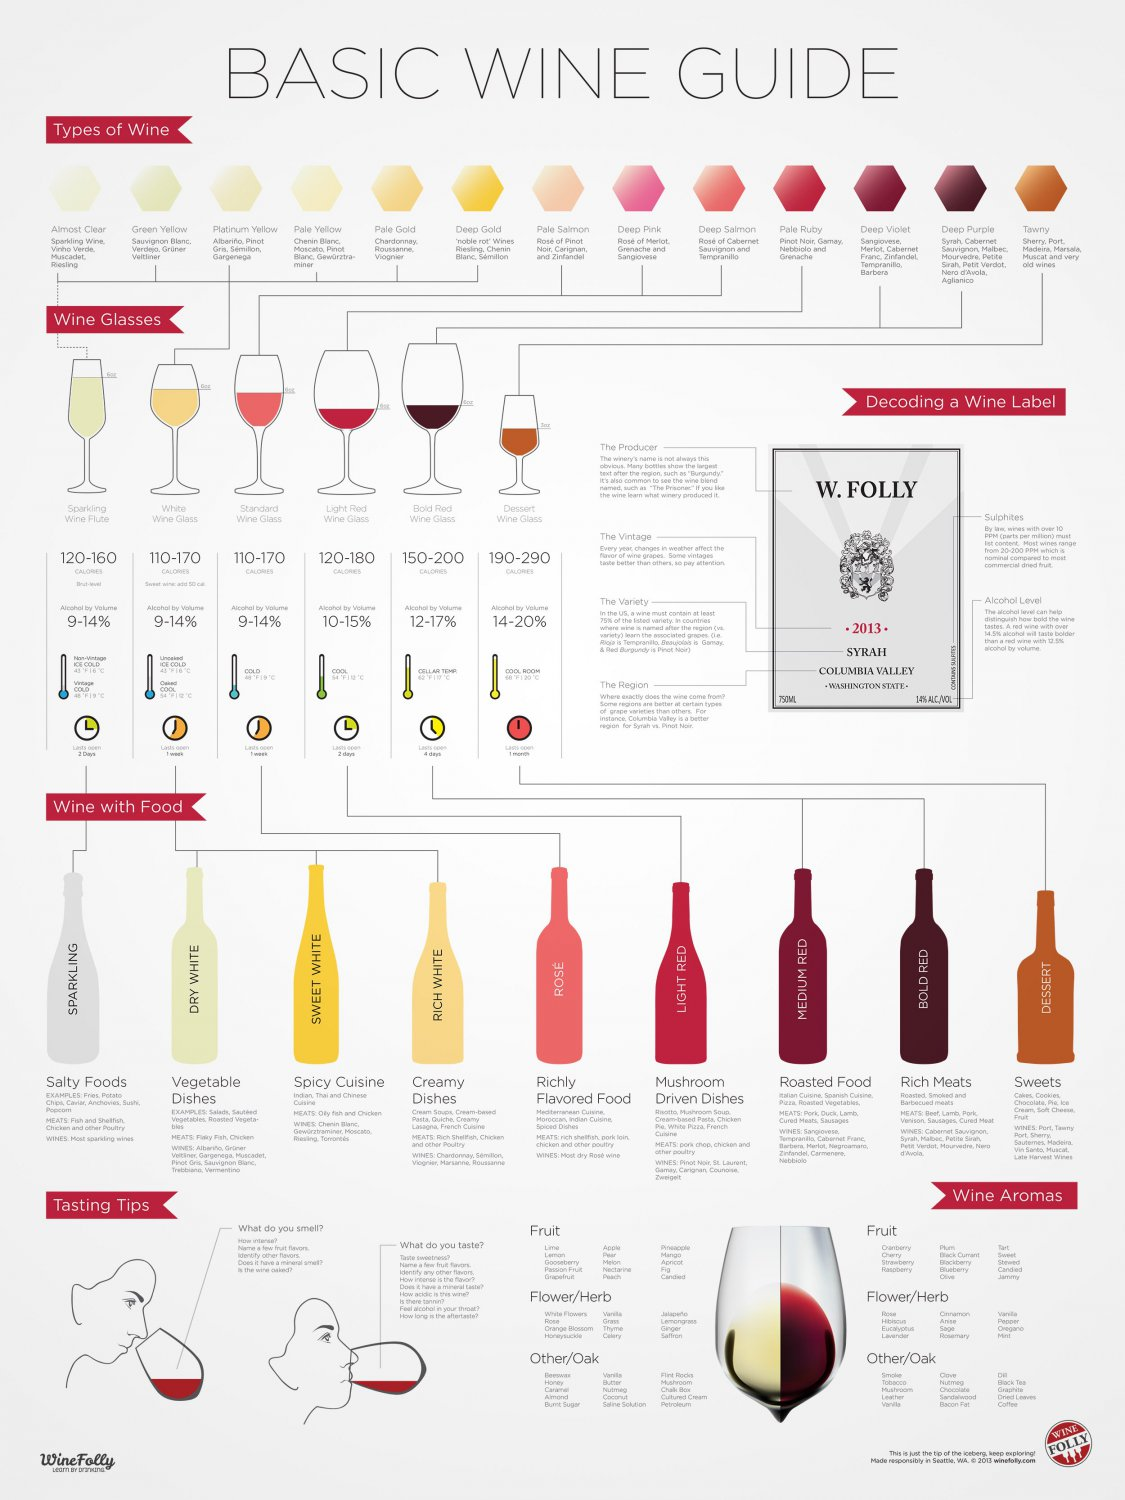 Basic Wine Guide Chart  18x28 inches Poster Print